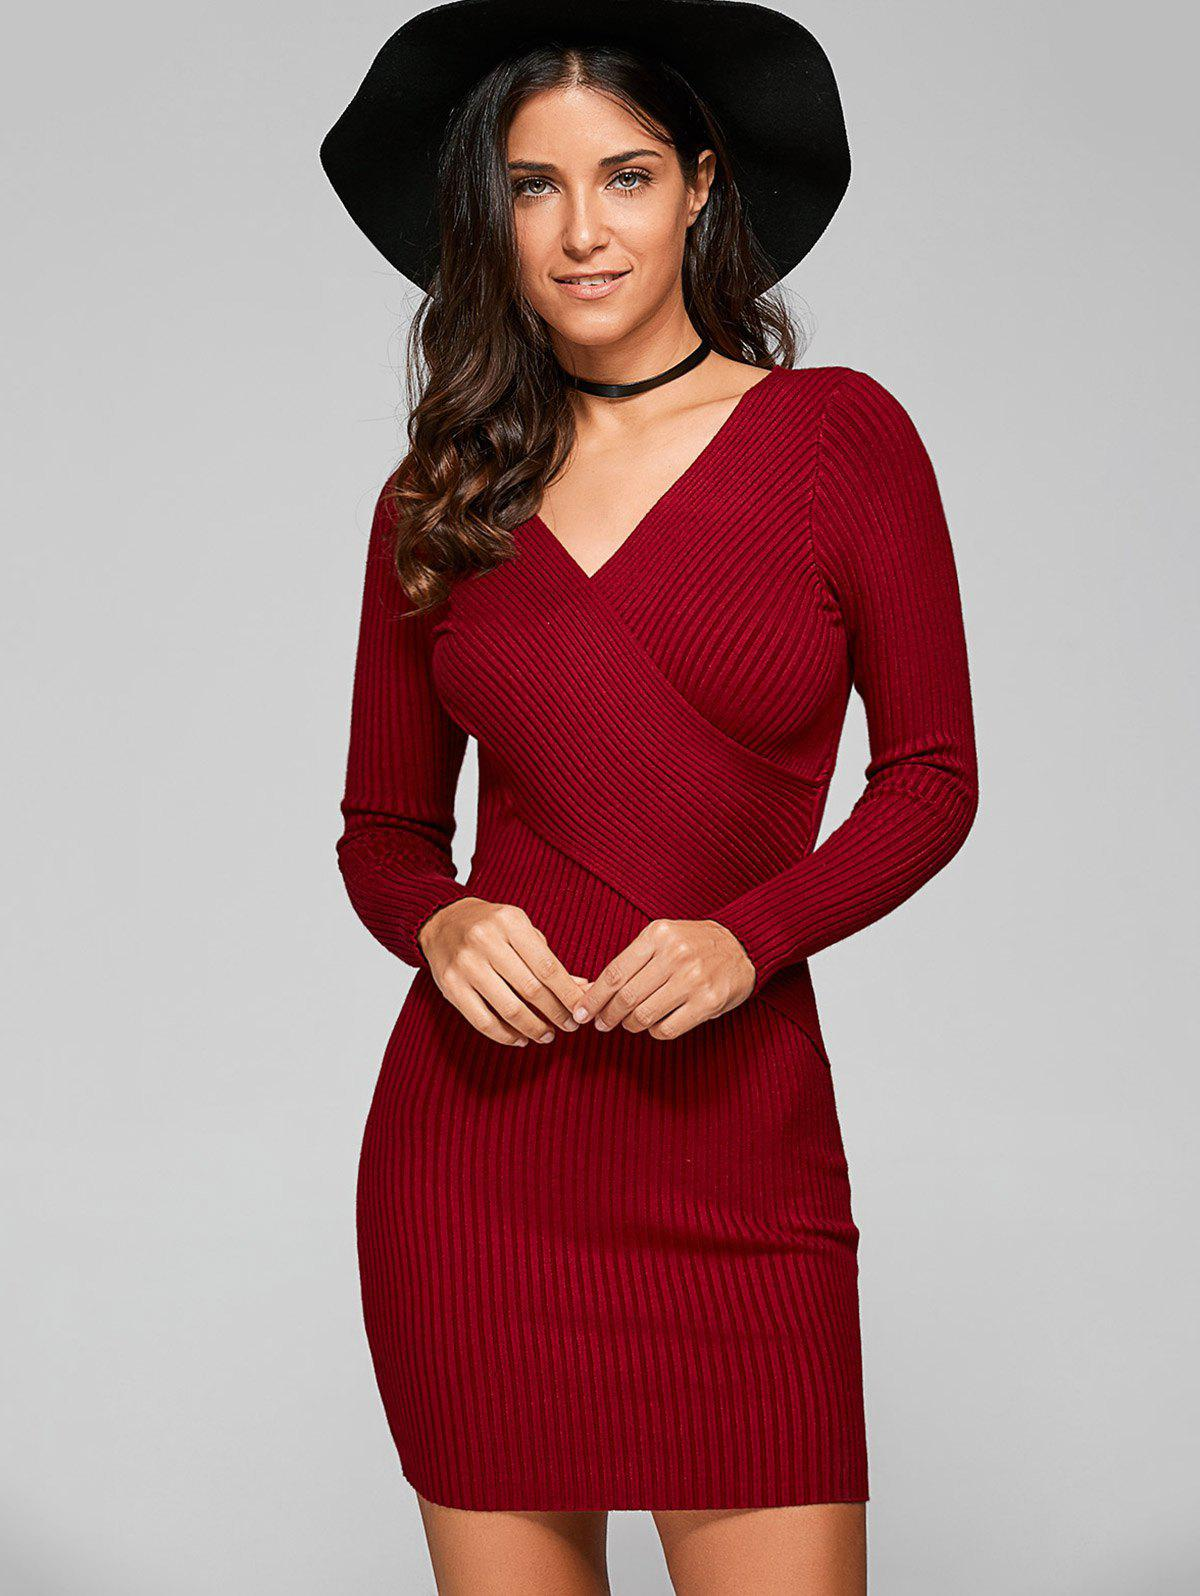 Long Sleeve V Neck Ribbed Sheath DressWOMEN<br><br>Size: ONE SIZE; Color: WINE RED; Style: Casual; Material: Acrylic; Silhouette: Sheath; Dresses Length: Mini; Neckline: V-Neck; Sleeve Length: Long Sleeves; Pattern Type: Solid; With Belt: No; Season: Fall; Weight: 0.570kg; Package Contents: 1 x Dress;